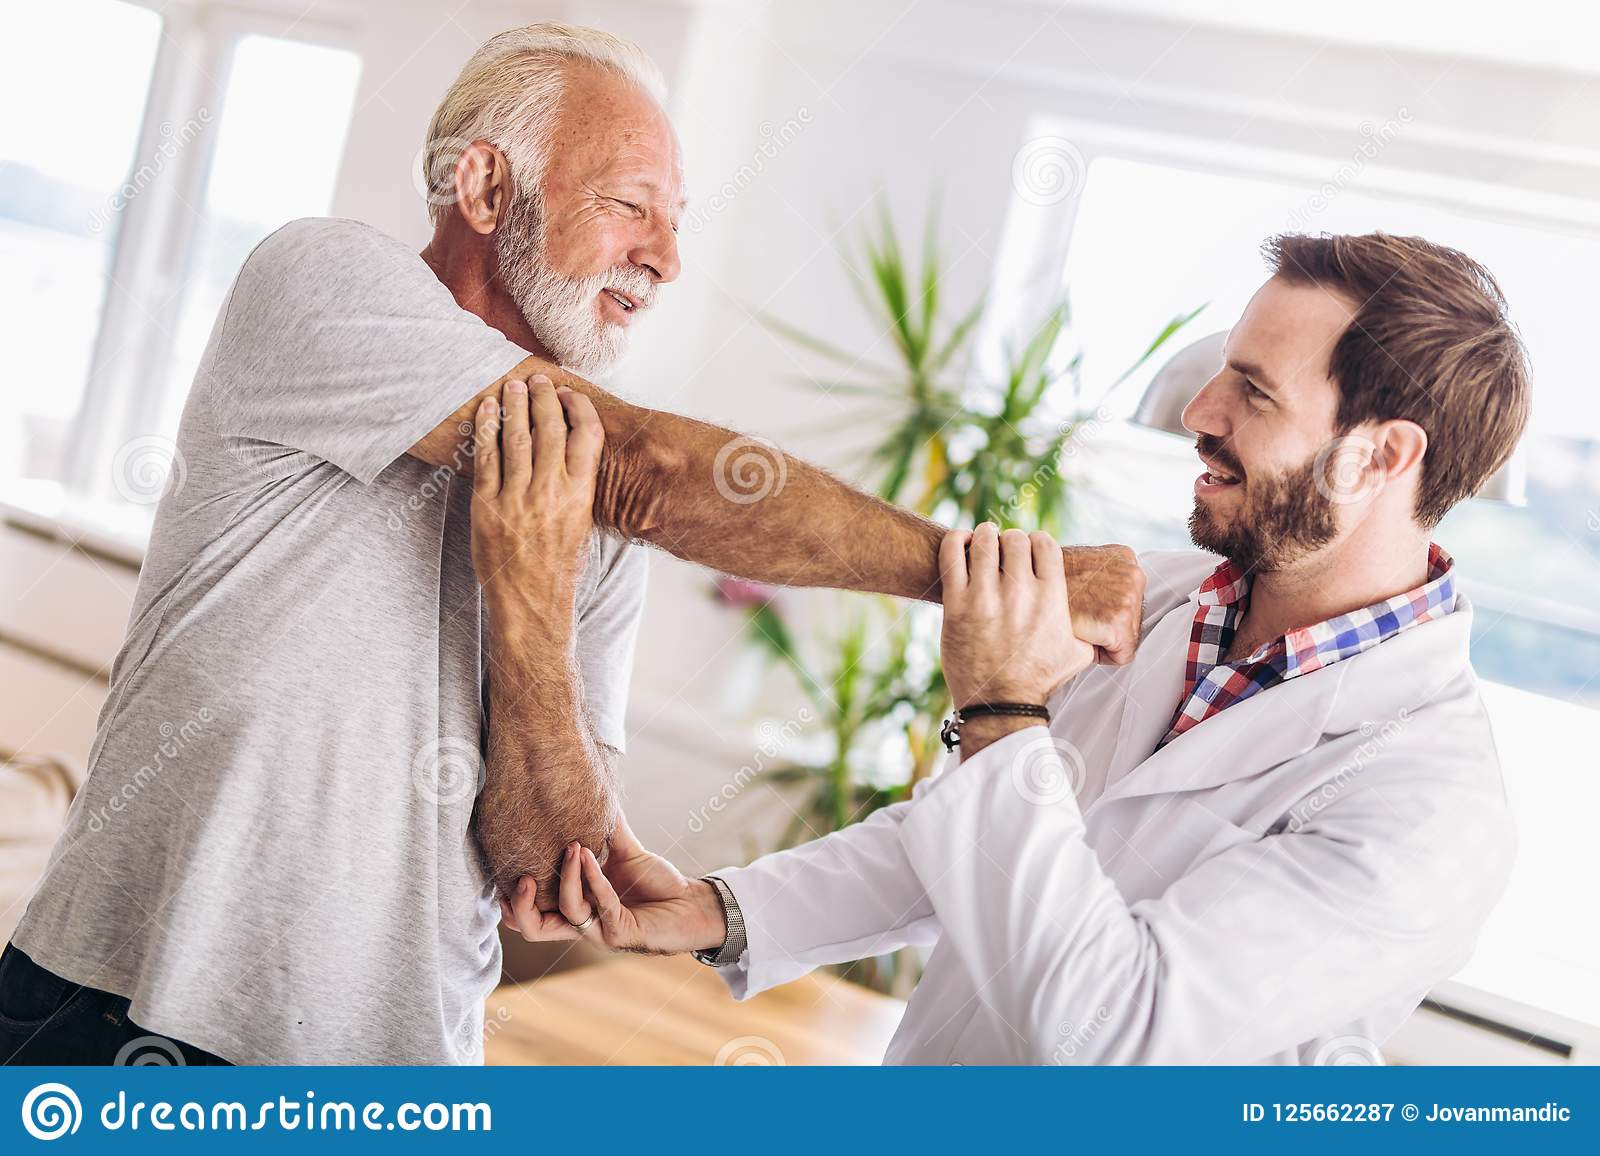 Male Chiropractor Doing Chiropractic Adjustment Of Female